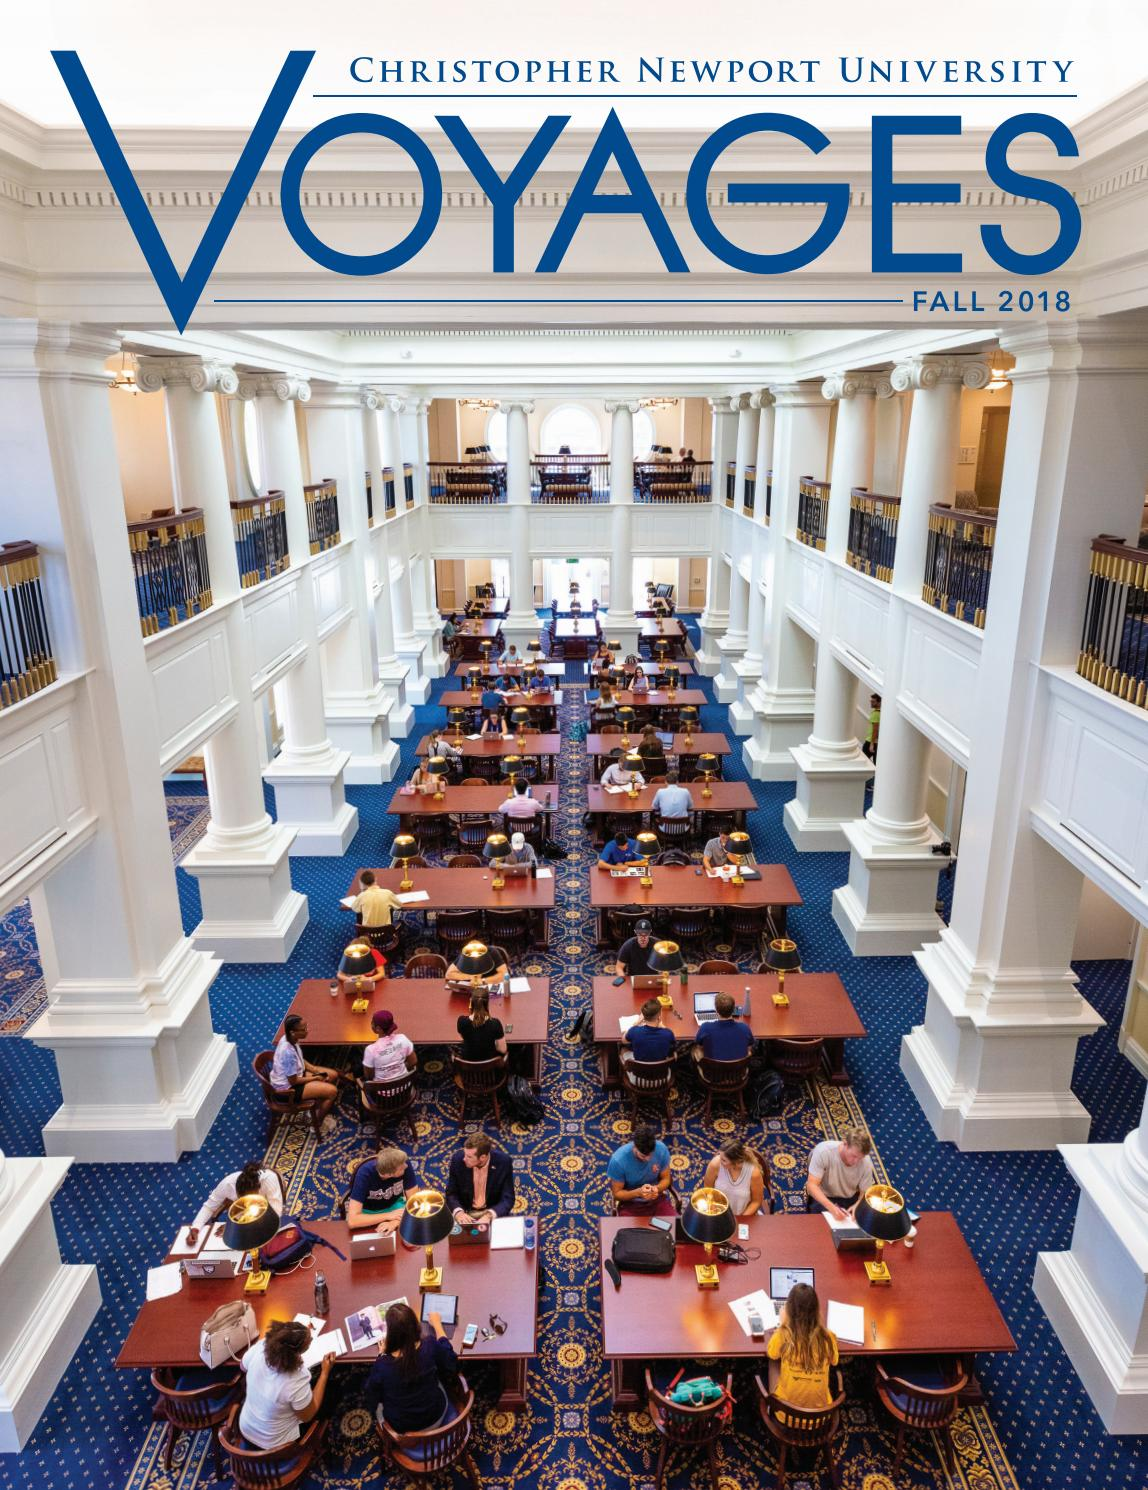 Voyages 2018 by Christopher Newport University - issuu